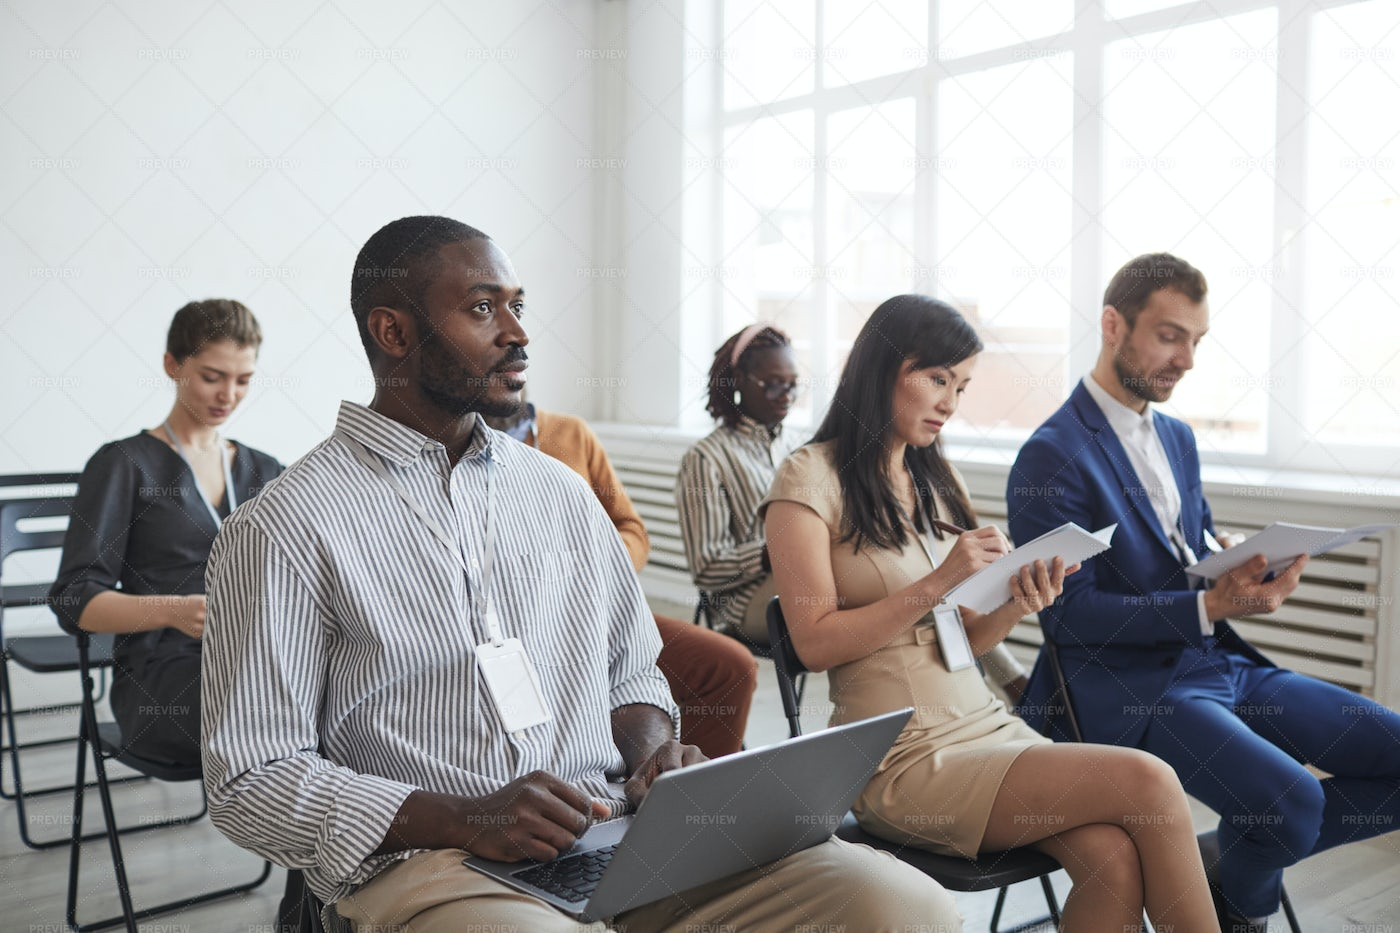 People Listening At Conference: Stock Photos